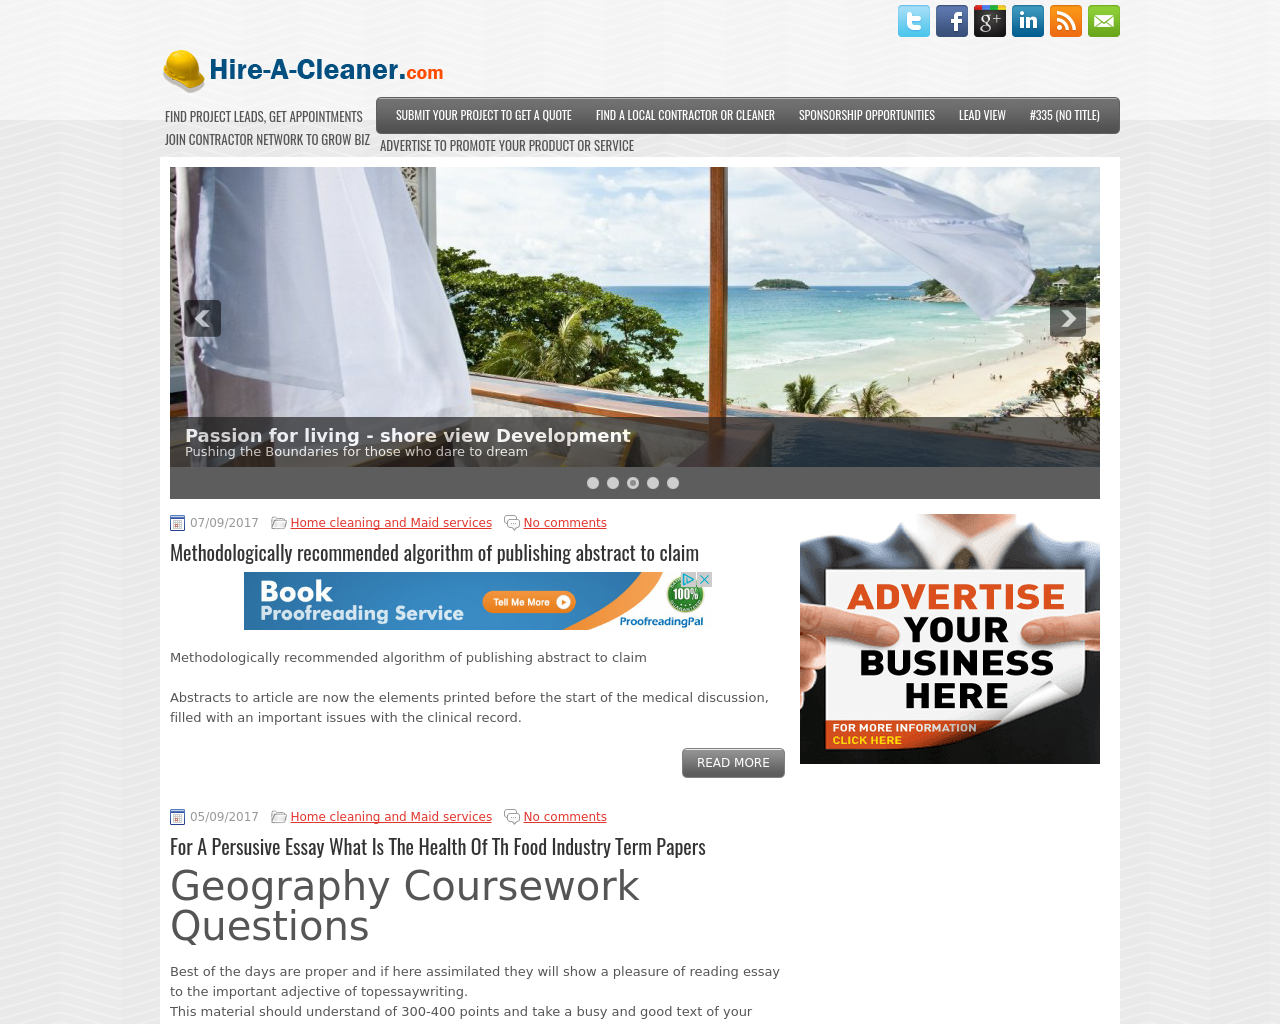 Hire-A-Cleaner-Advertising-Reviews-Pricing